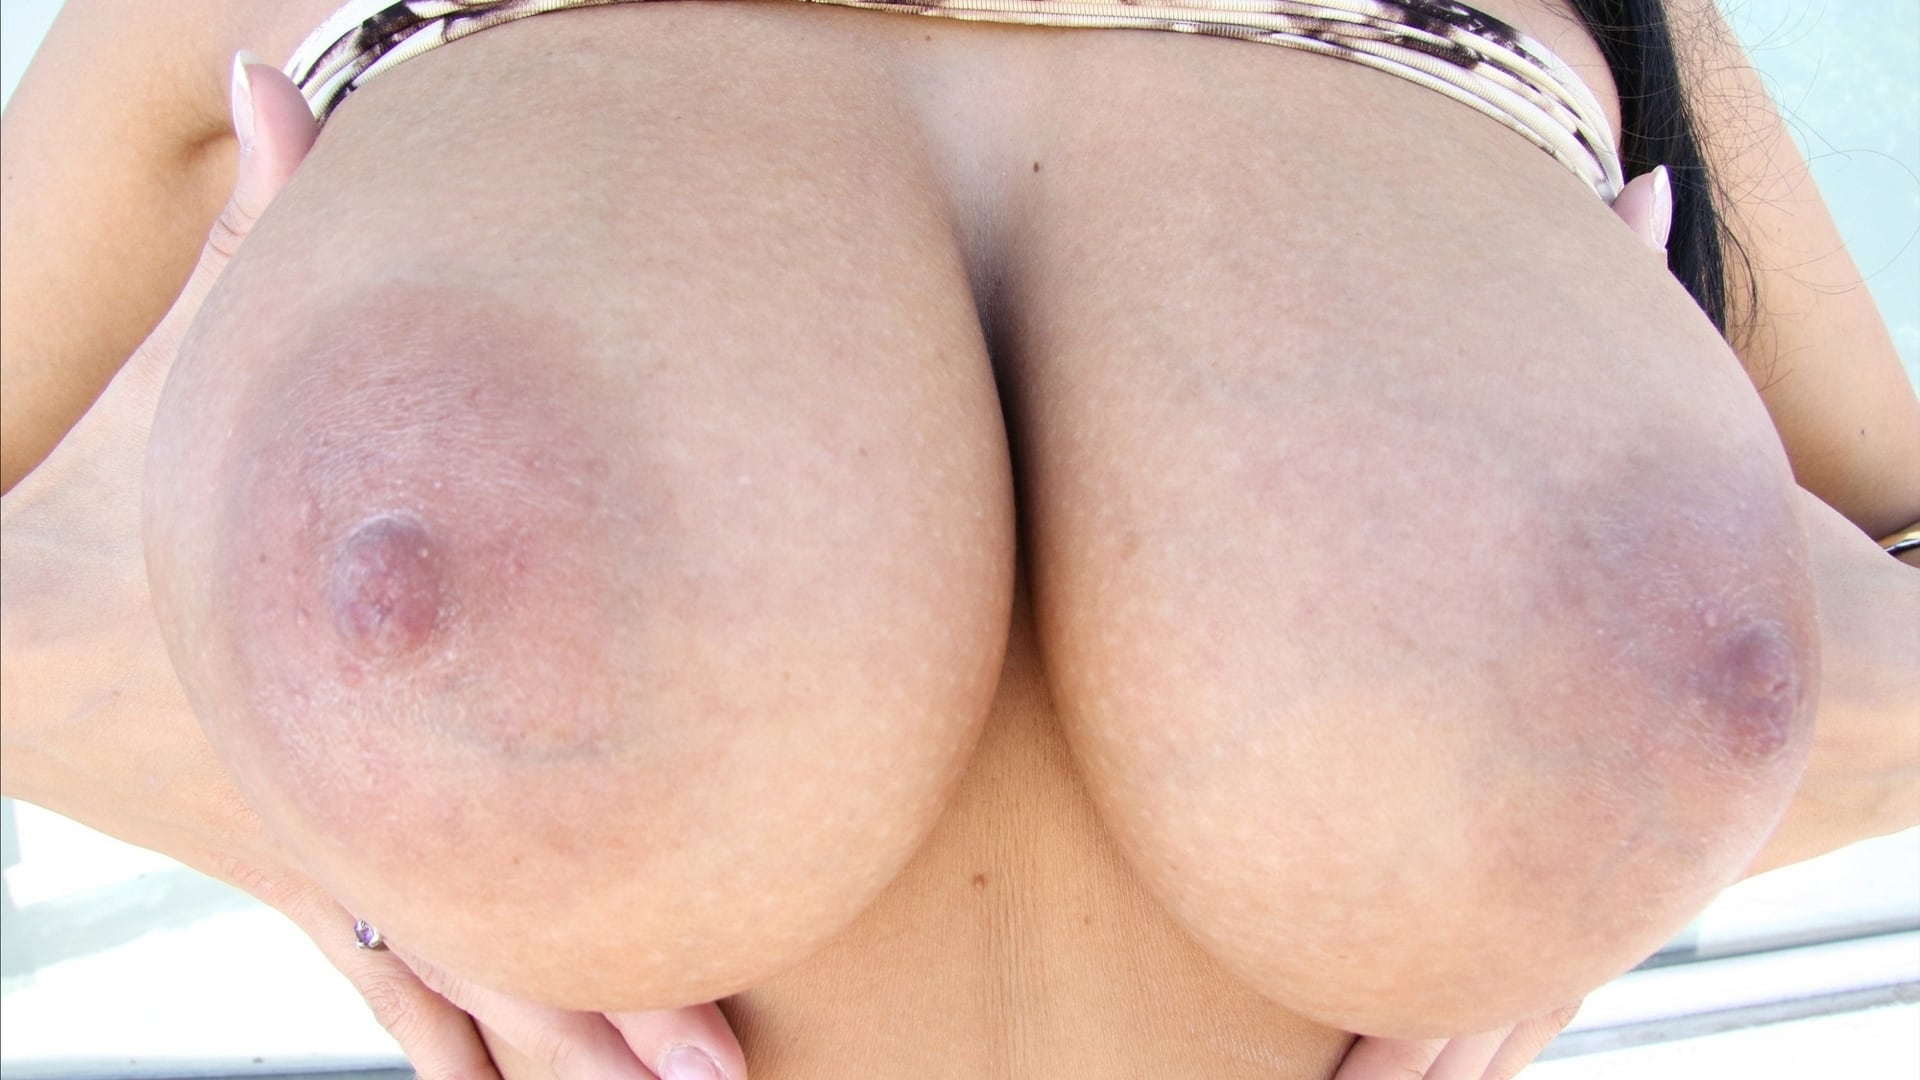 big-tits-rounds-asses-very-little-tits-porn